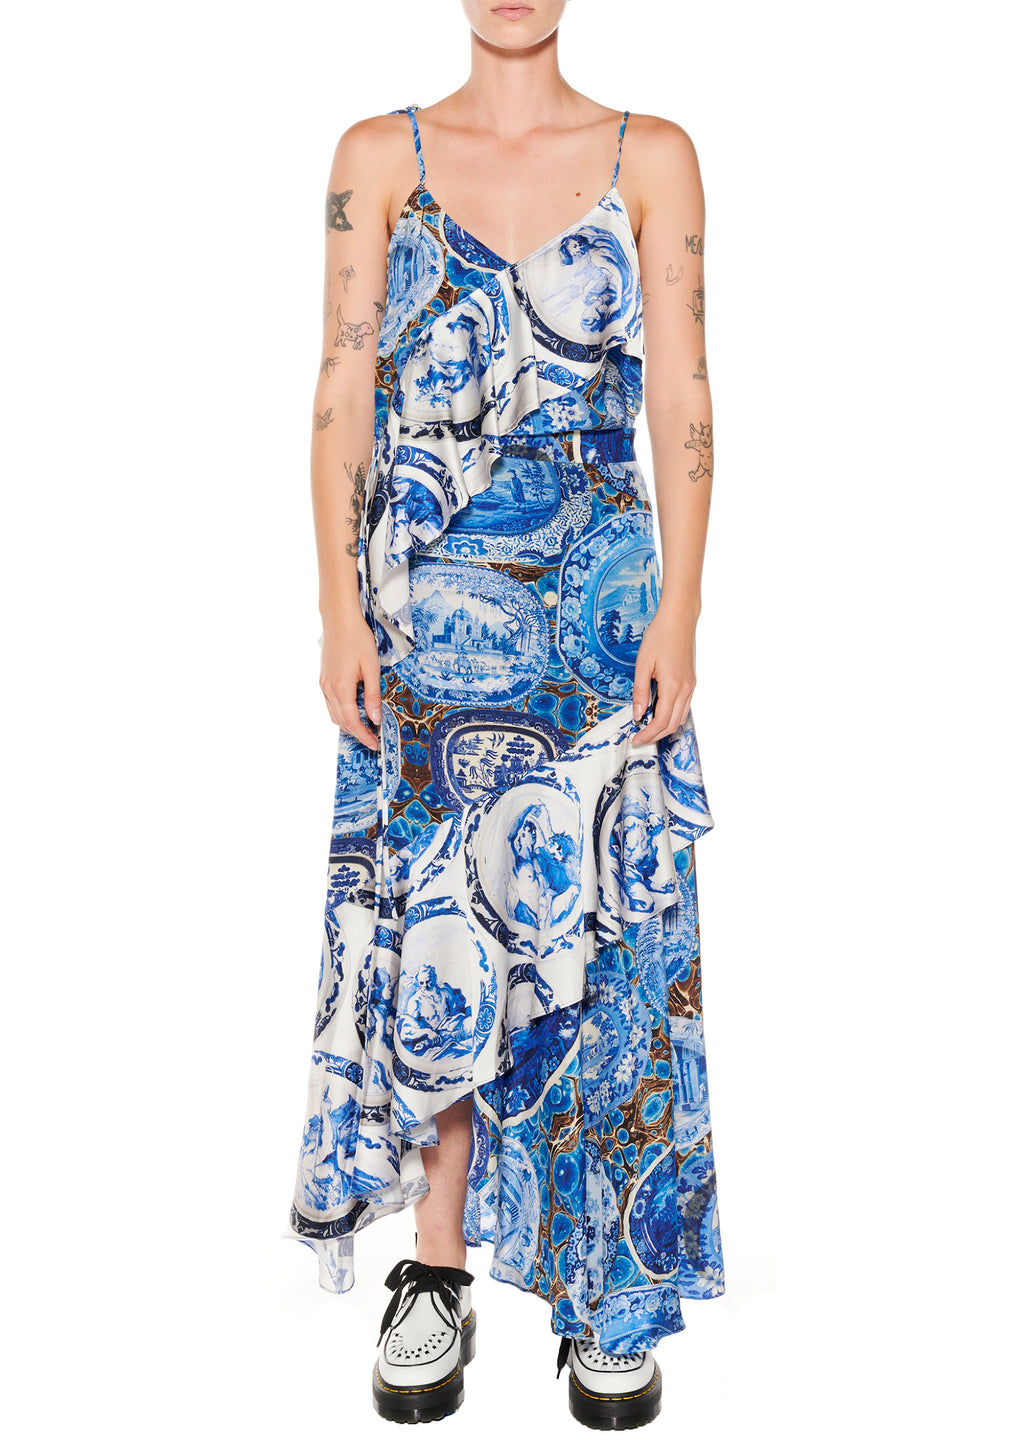 Mixed Print Asymmetrical Skirt - Women's Bottoms - Libertine